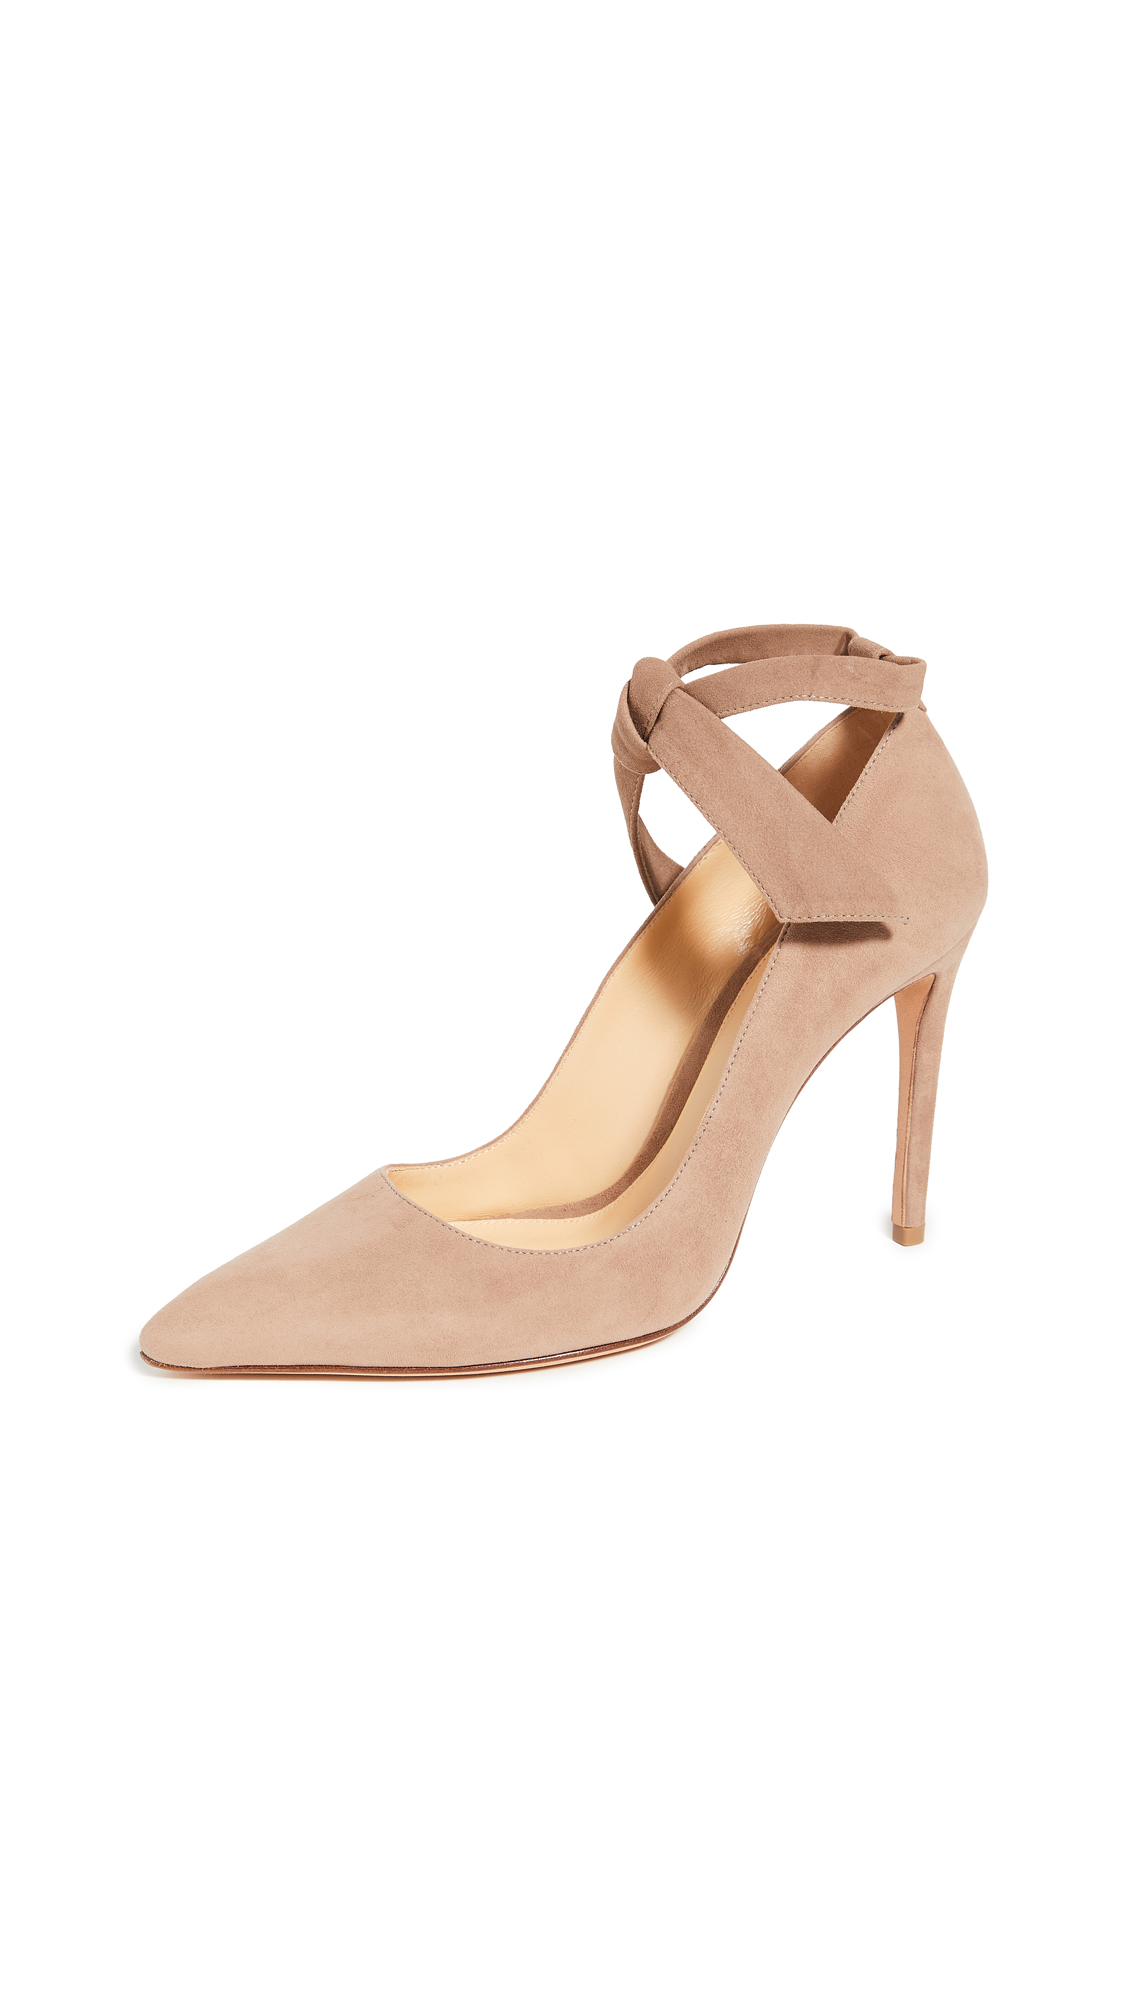 Alexandre Birman Clarita New Pumps 100